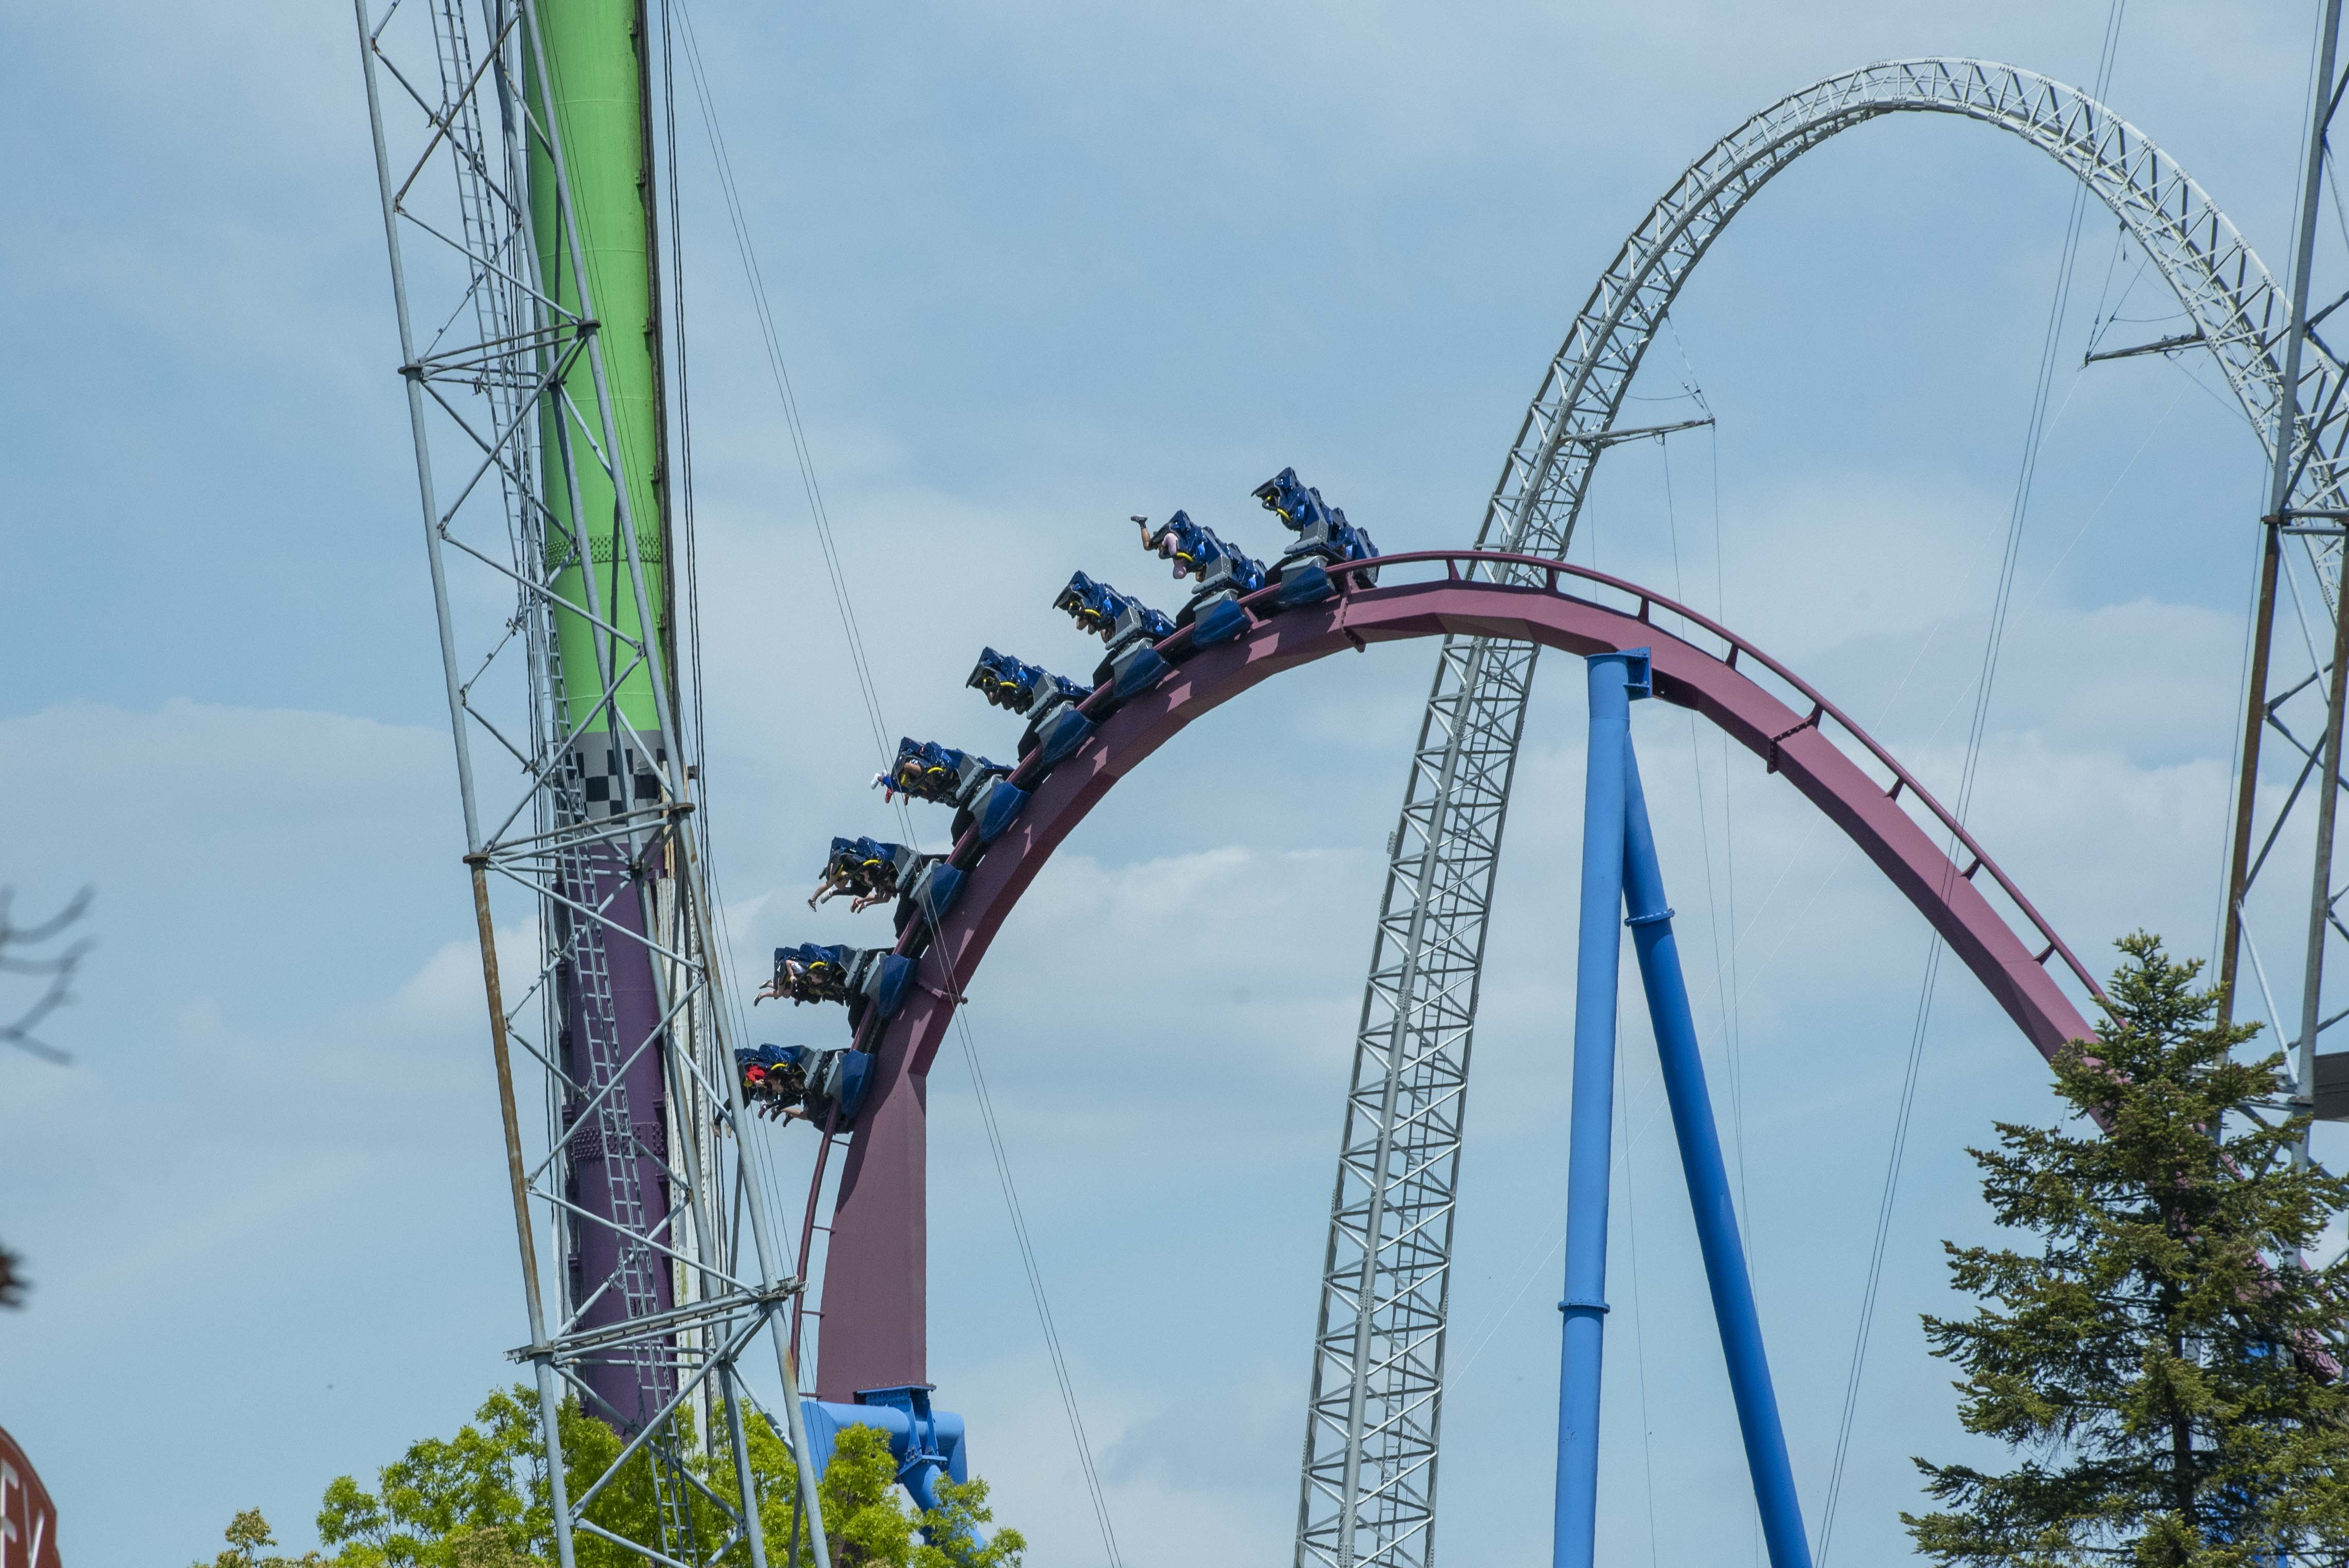 It felt rough : Fights and unruly guests prompt early closing of Kings Island Saturday